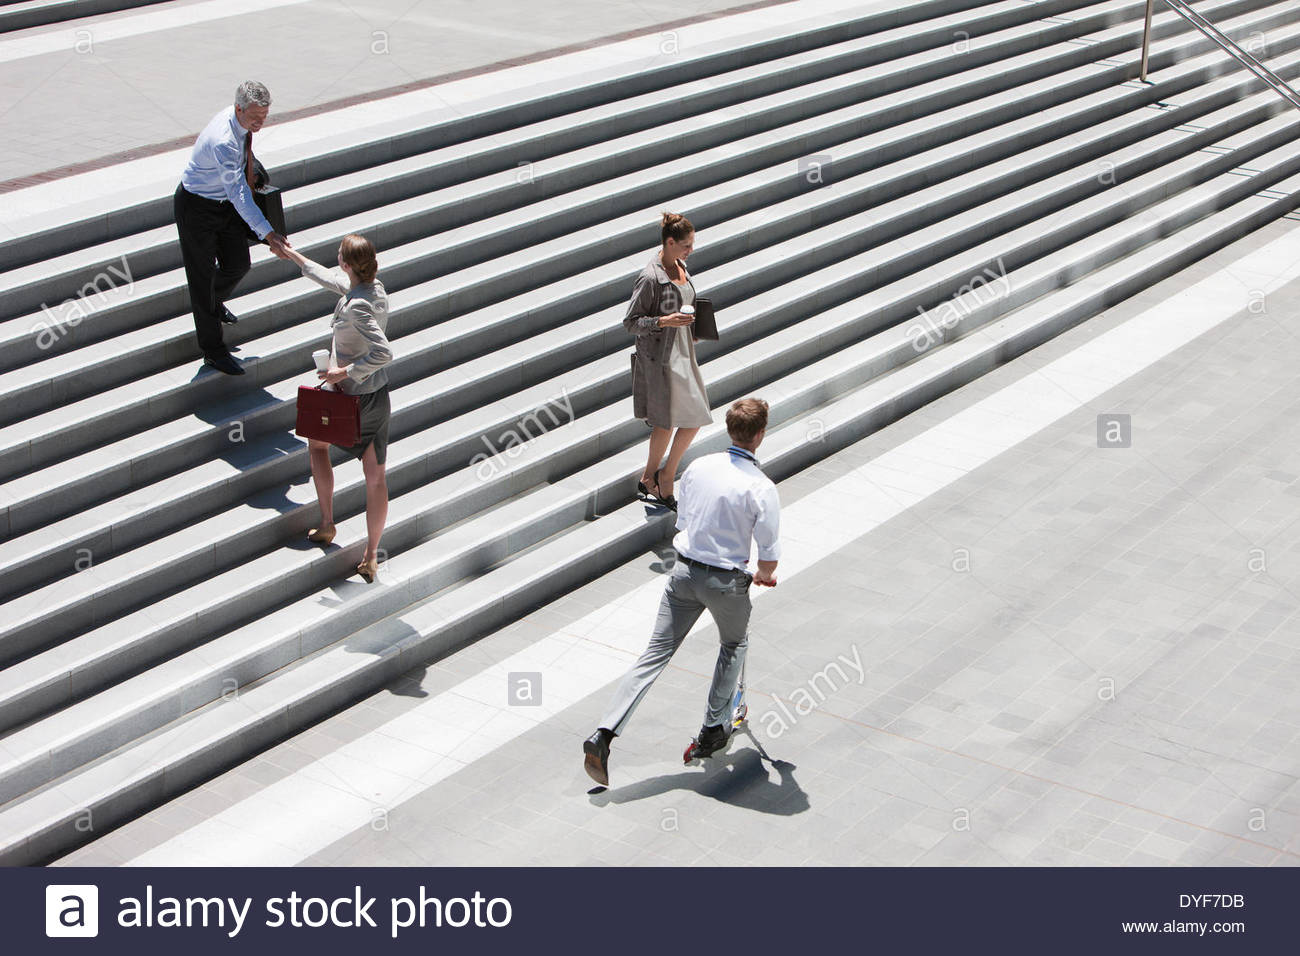 Business people shaking hands on steps outdoors - Stock Image